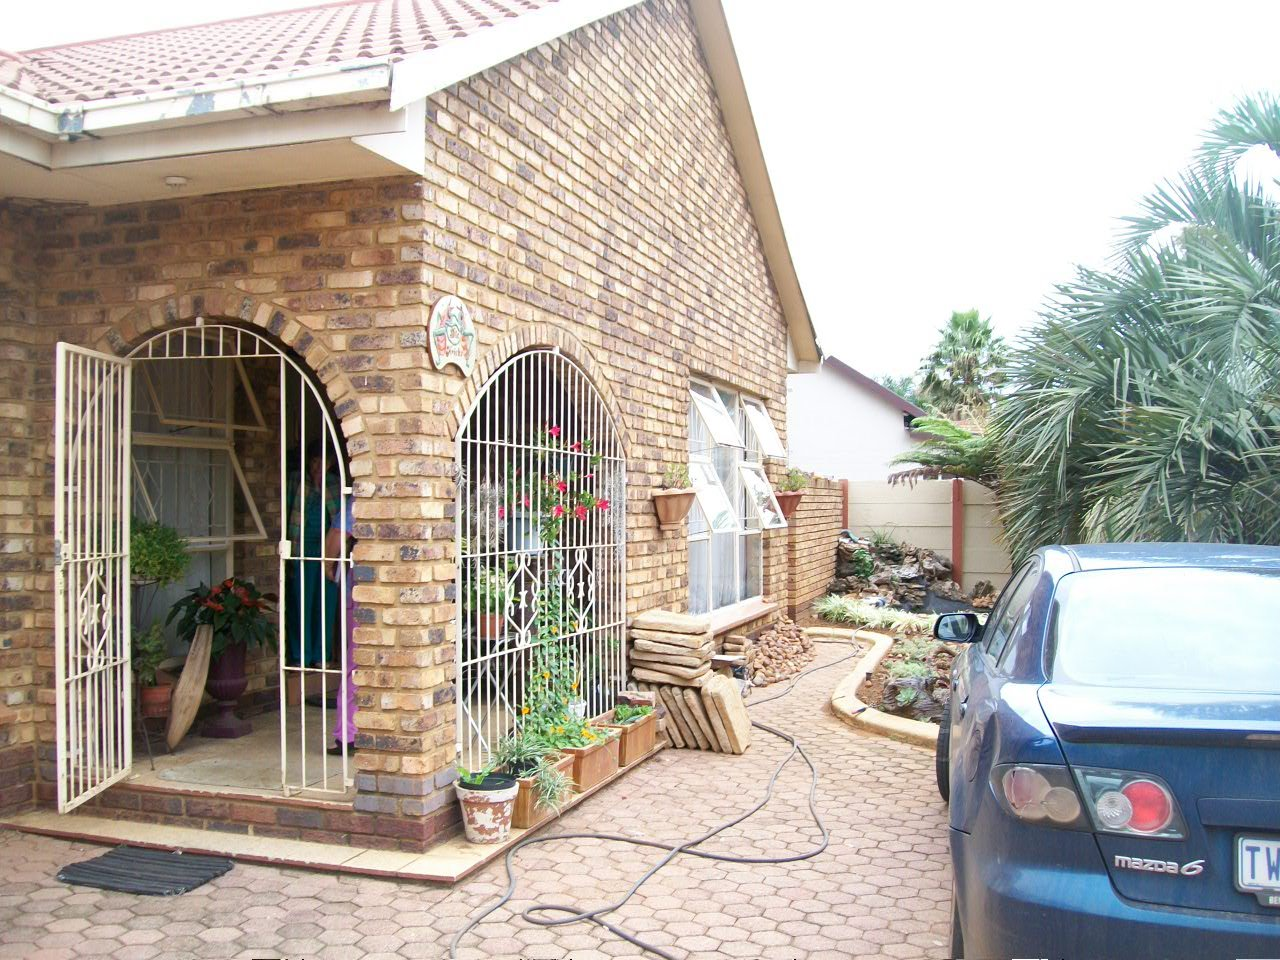 Randfontein, Helikonpark Property  | Houses For Sale Helikonpark, Helikonpark, House 4 bedrooms property for sale Price:999,000